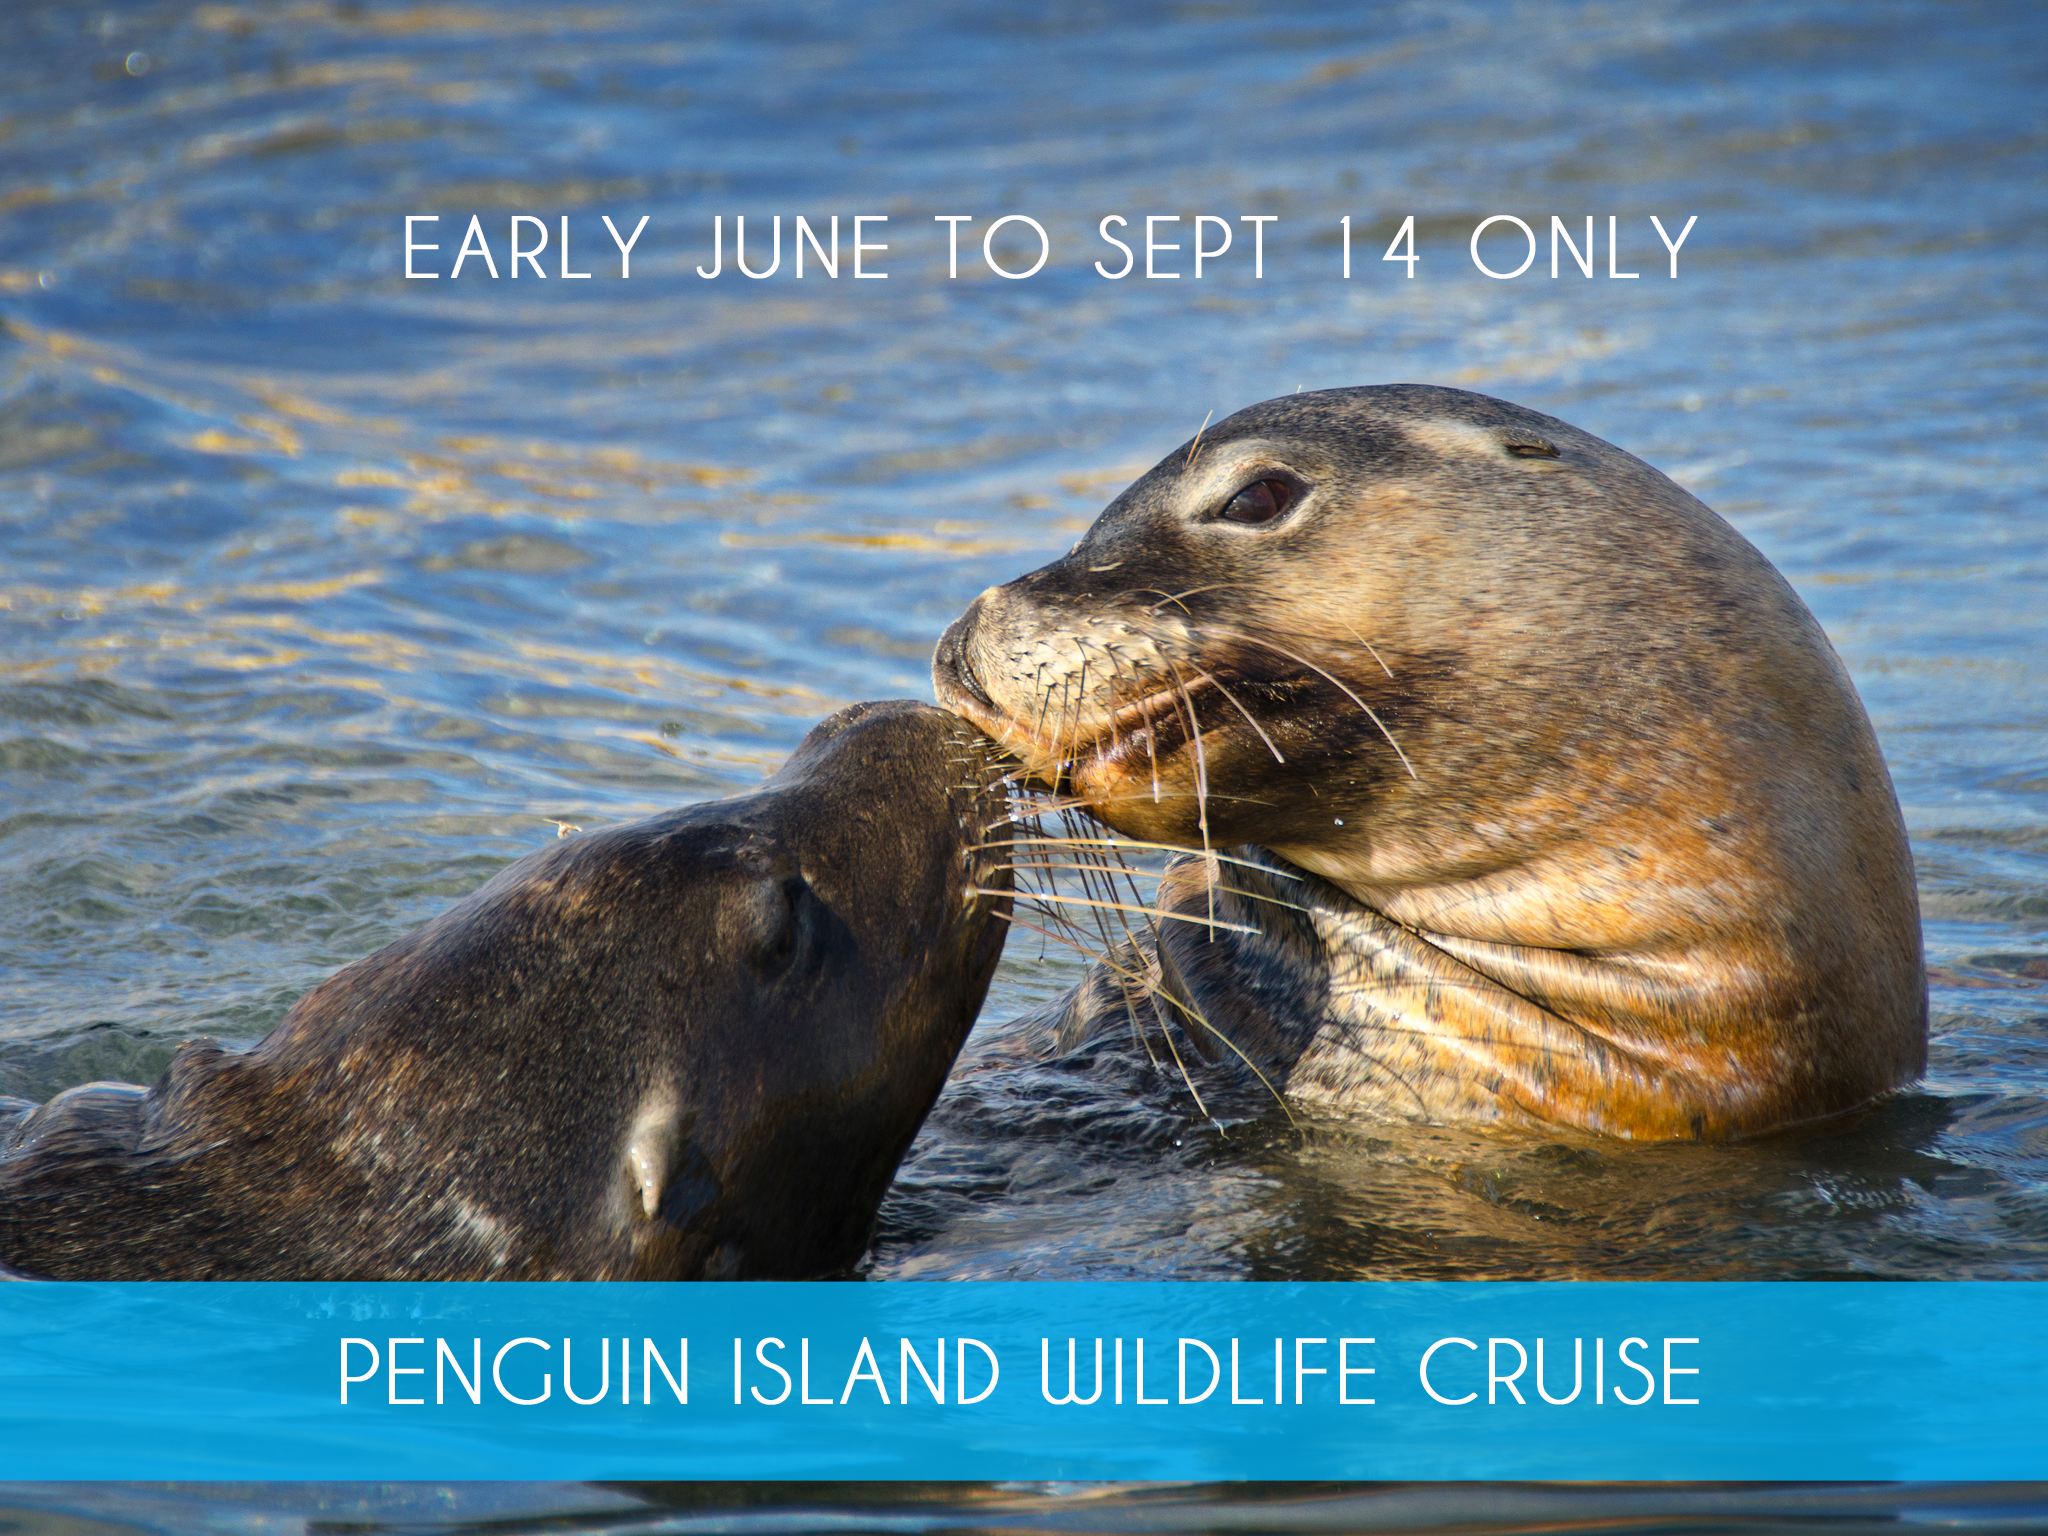 PENGUIN ISLAND WILDLIFE CRUISE  (June 6 to Sept 14 only)Join us on a 60 minute glass bottom boat cruise in search of dolphins, sea lions and nesting sea birds. Includes a 30 minute guided walk on Penguin Island to take in spectacular views of the marine park.  Adults $39   MORE INFO